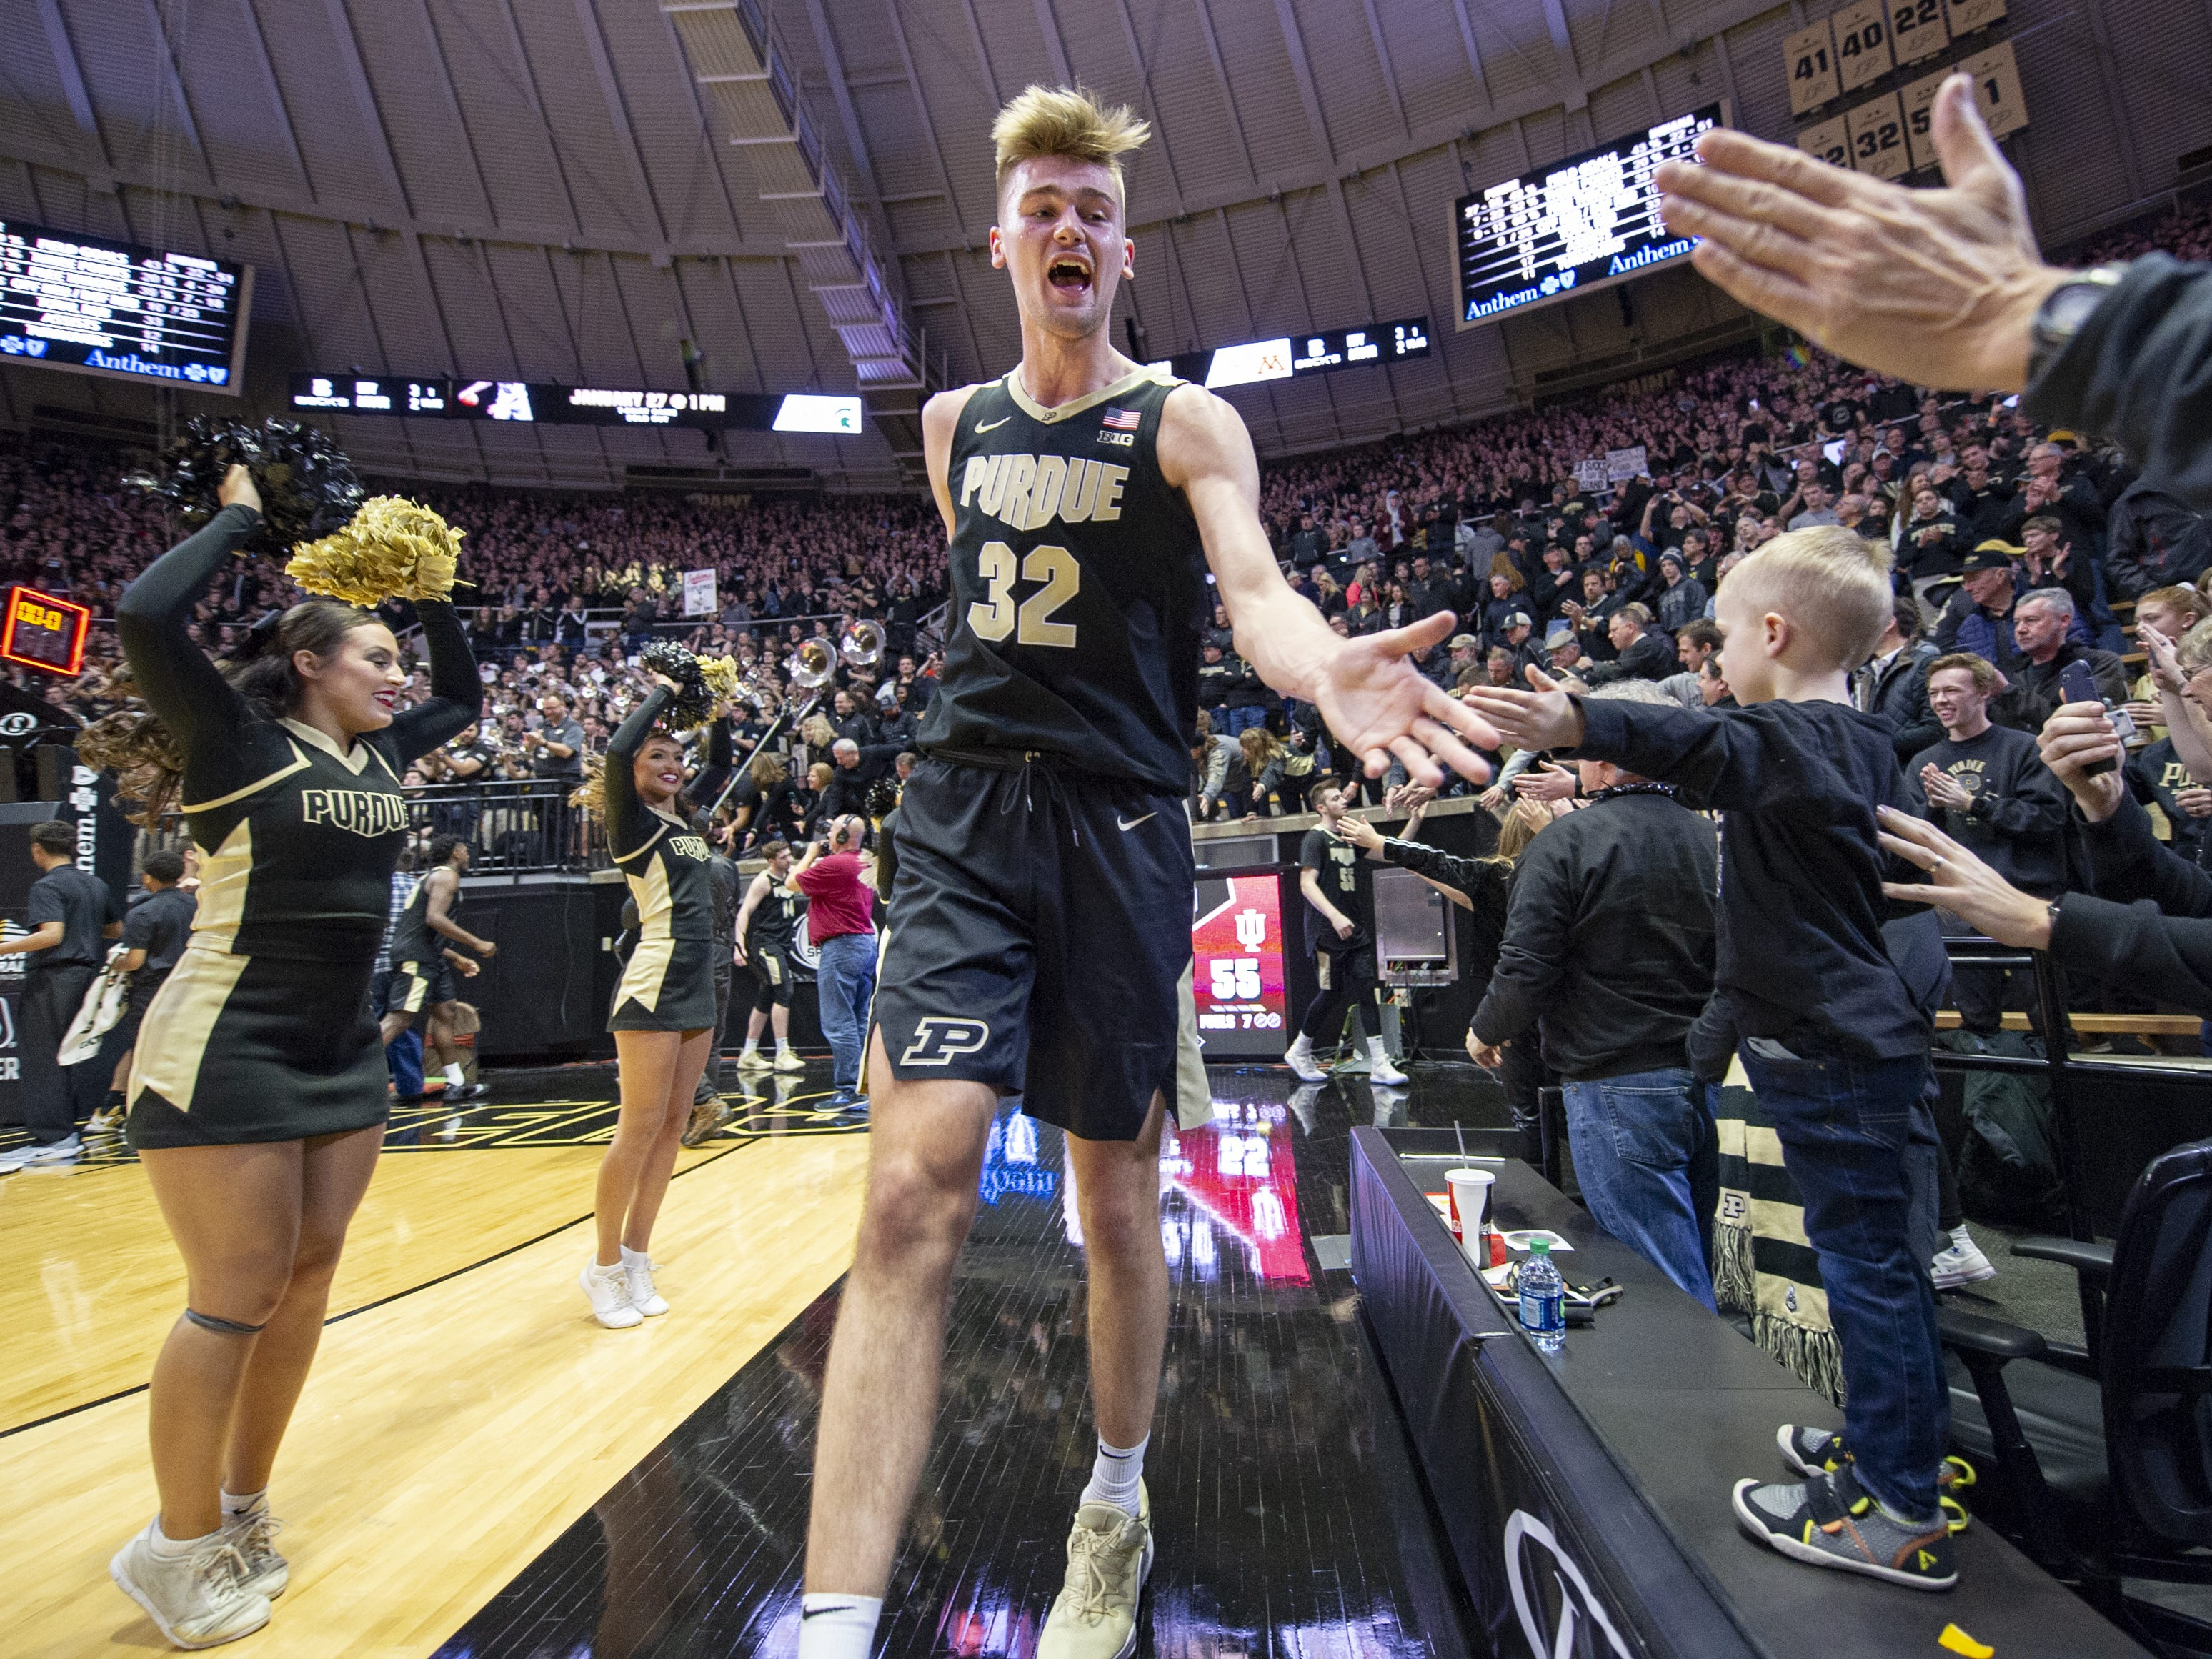 Purdue Boilermakers center Matt Haarms (32) celebrates the team's victory over Indiana with fans.